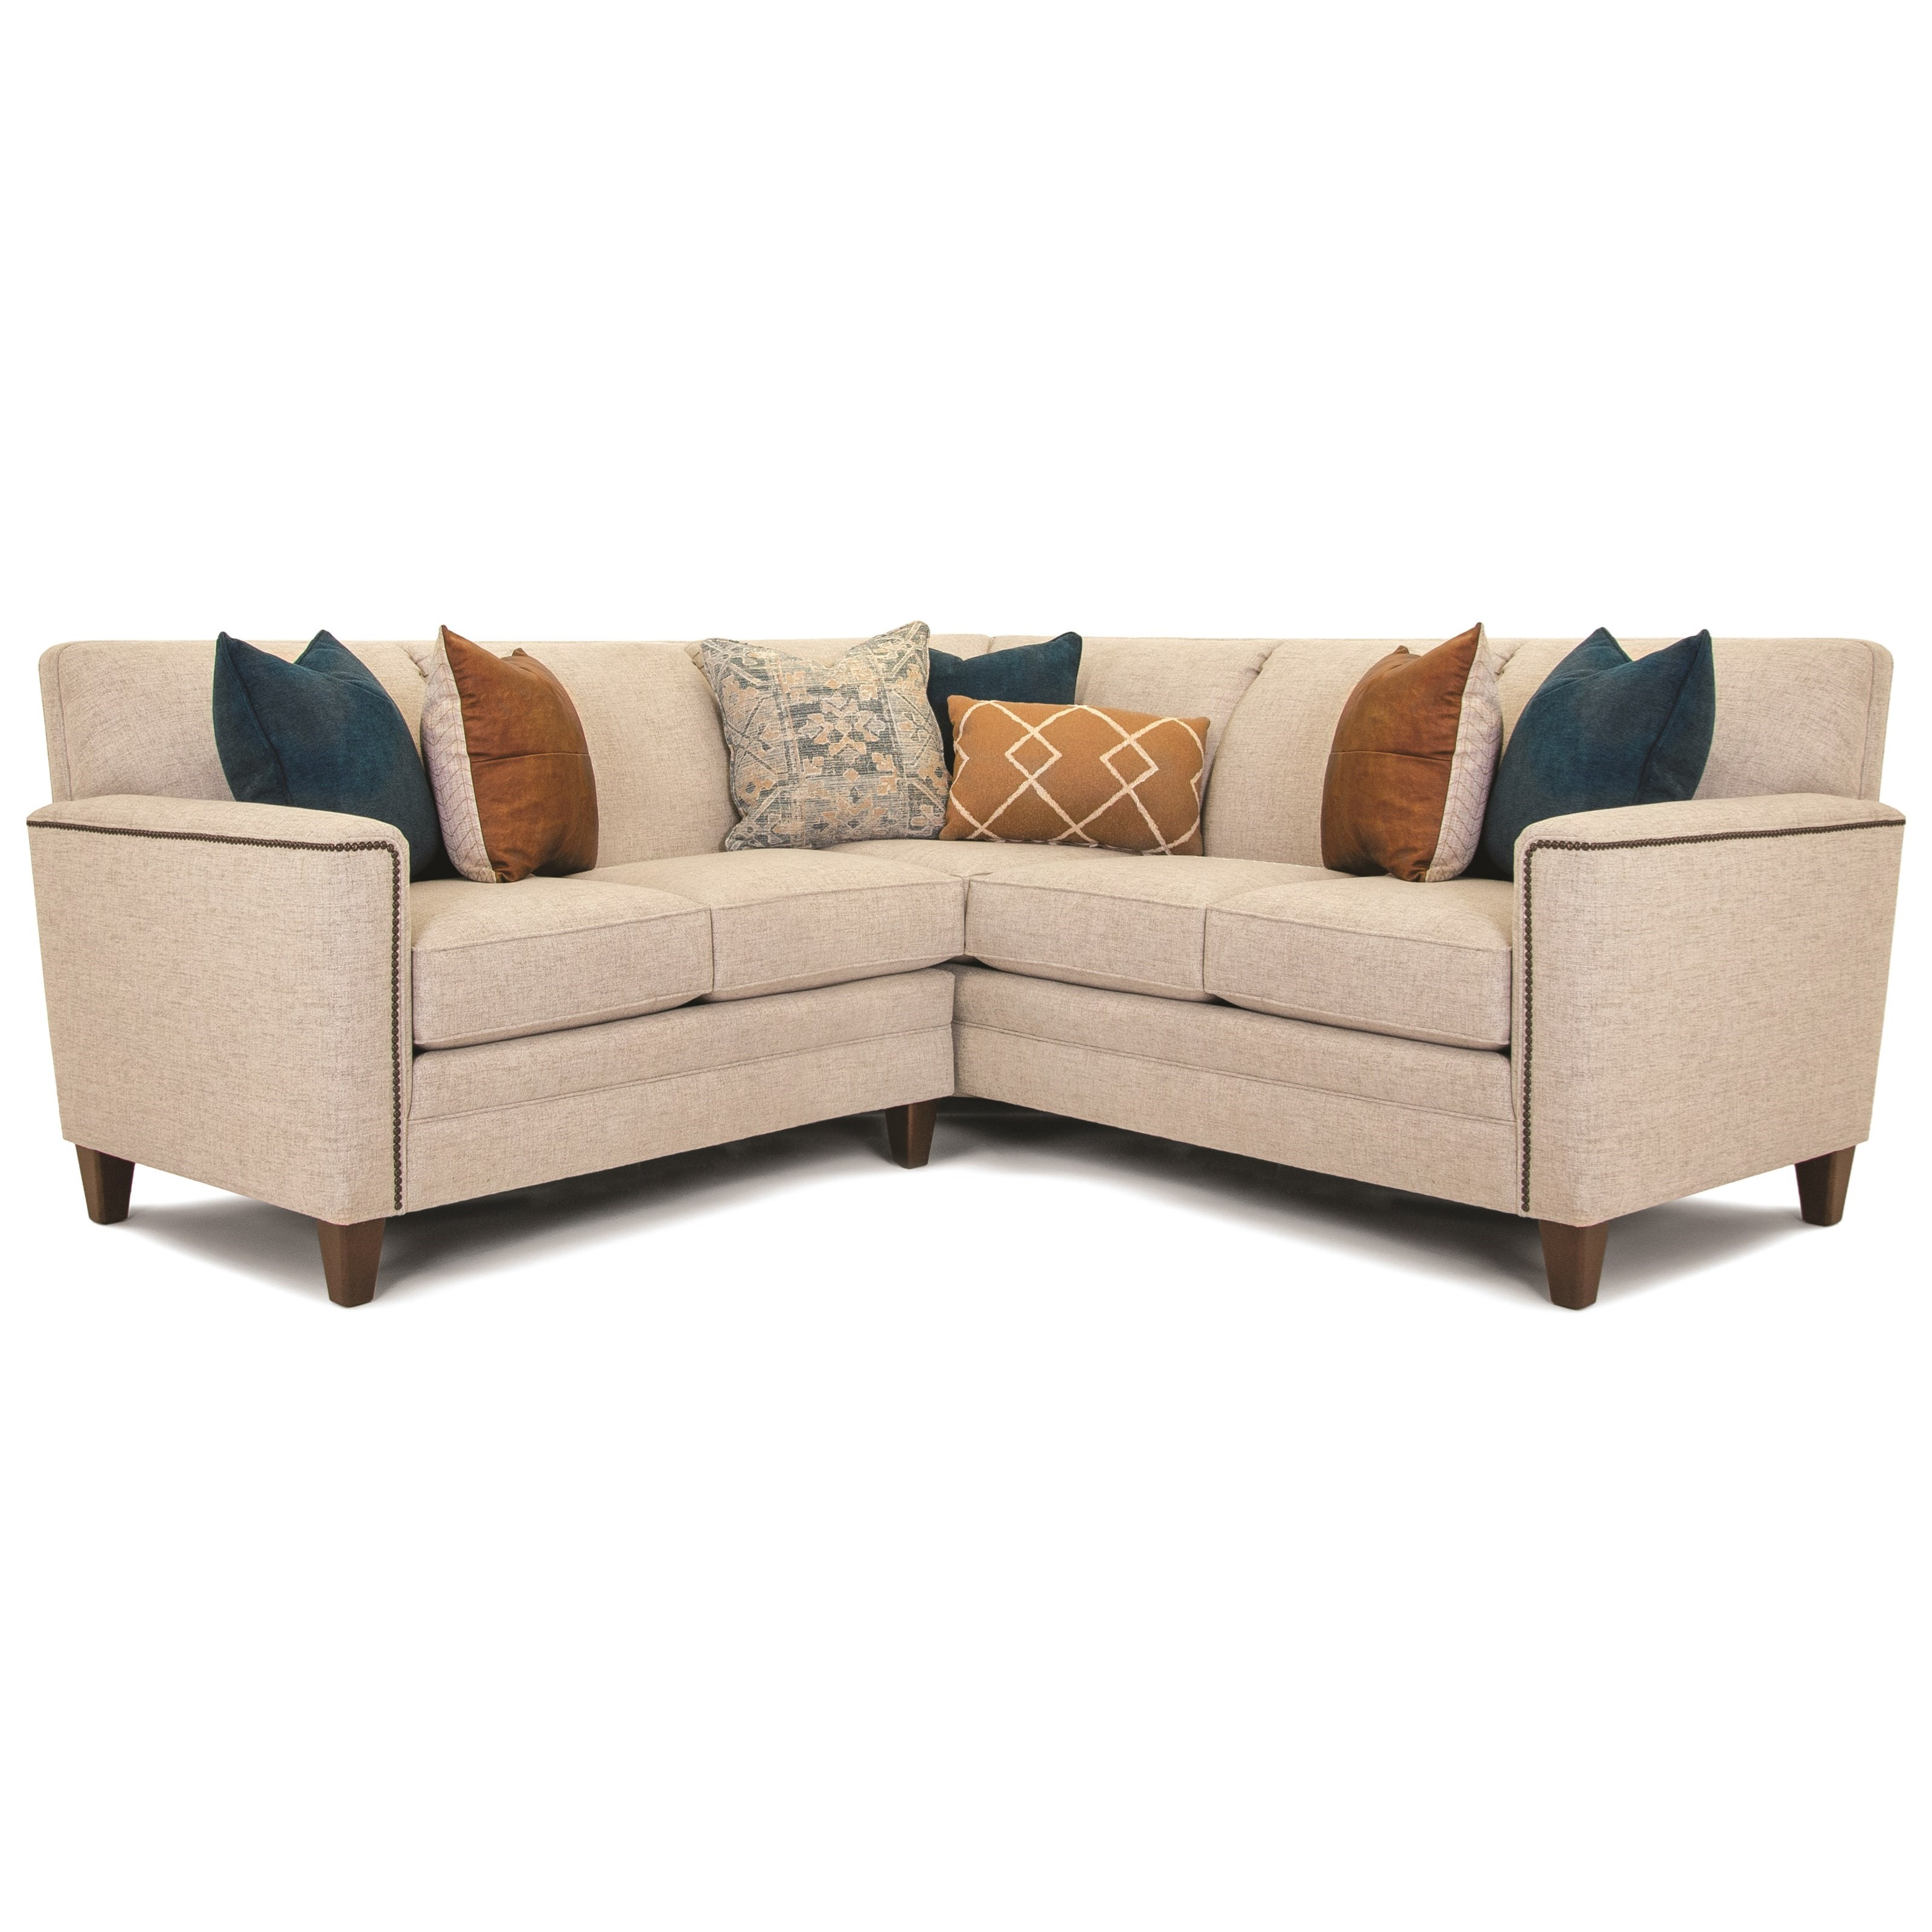 Build Your Own 3000 Series Customizable 2-Piece Sectional by Smith Brothers at Turk Furniture